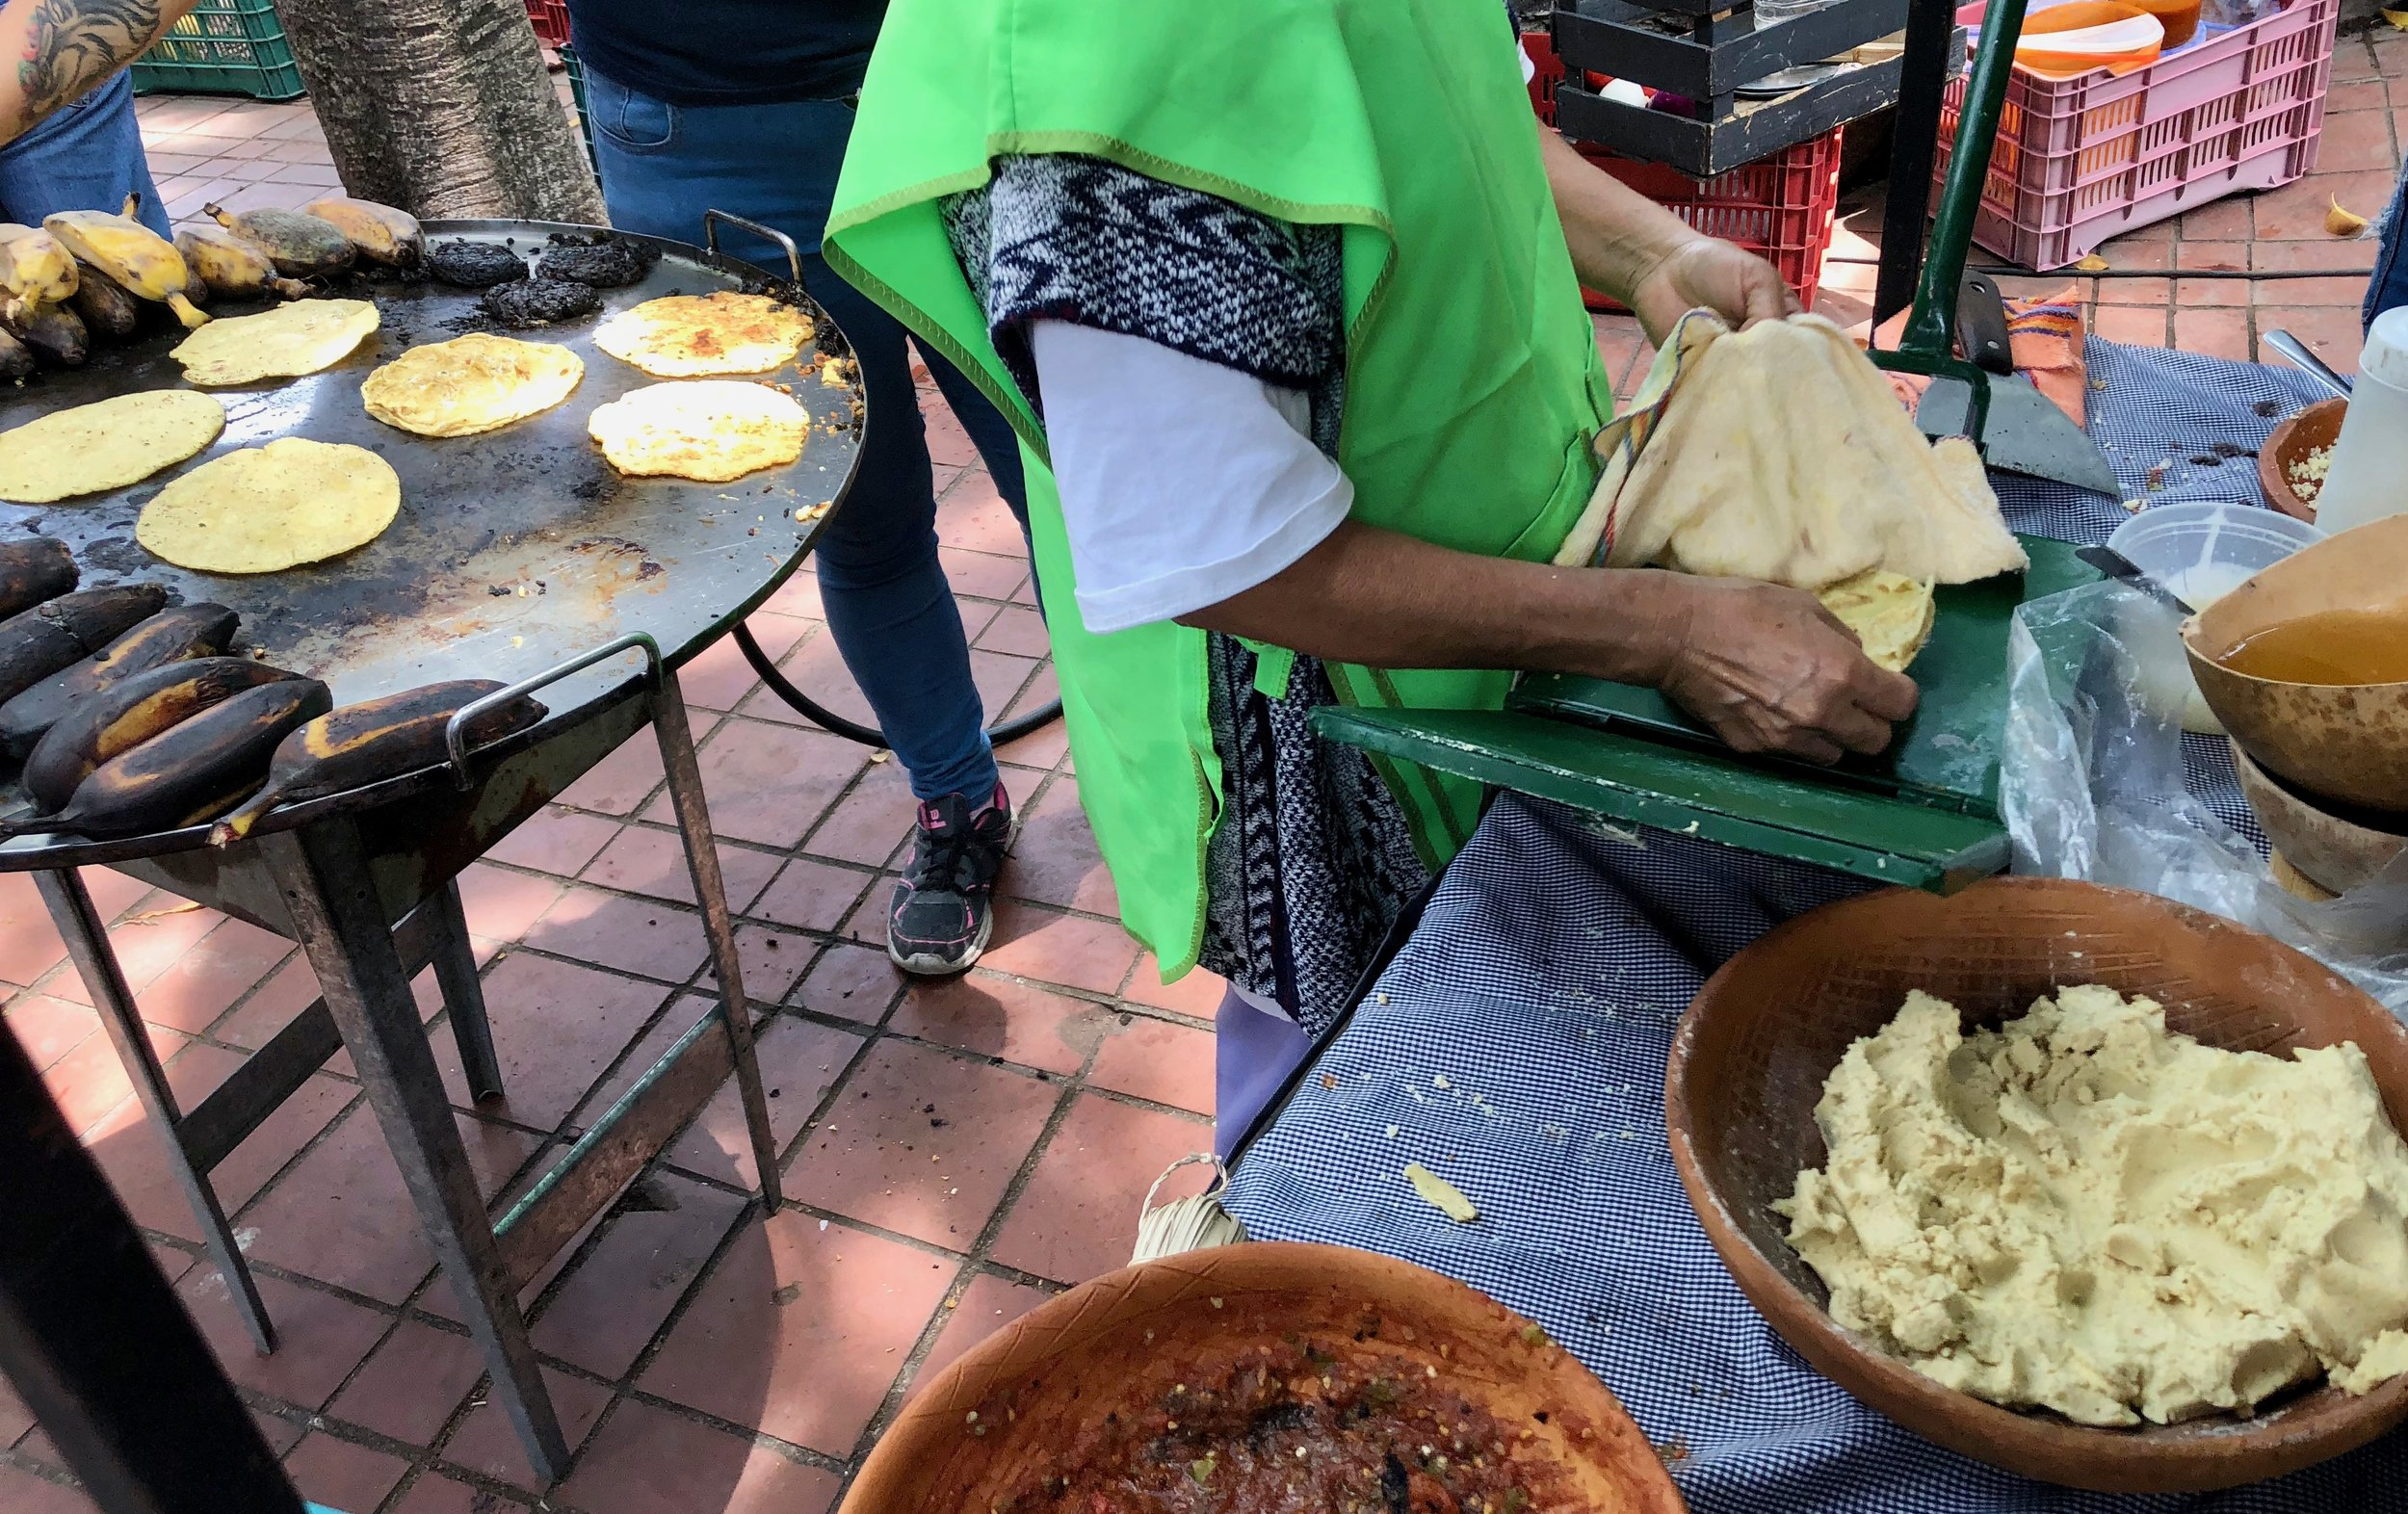 Making tamales in Mexico City